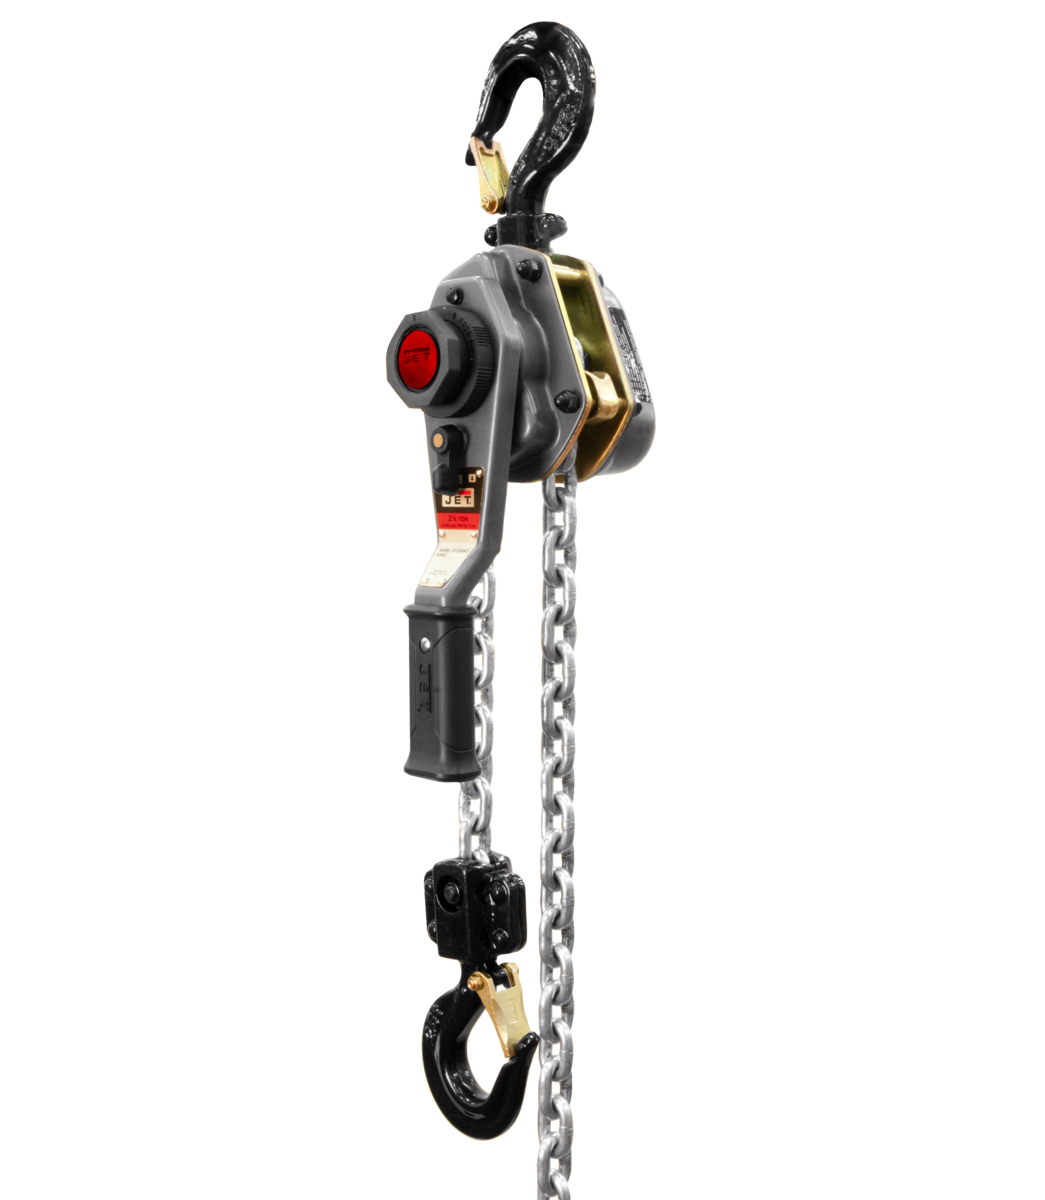 JLH-250WO-15 2-1/2 Ton Lever Hoist, 15' Lift with Overload Protection